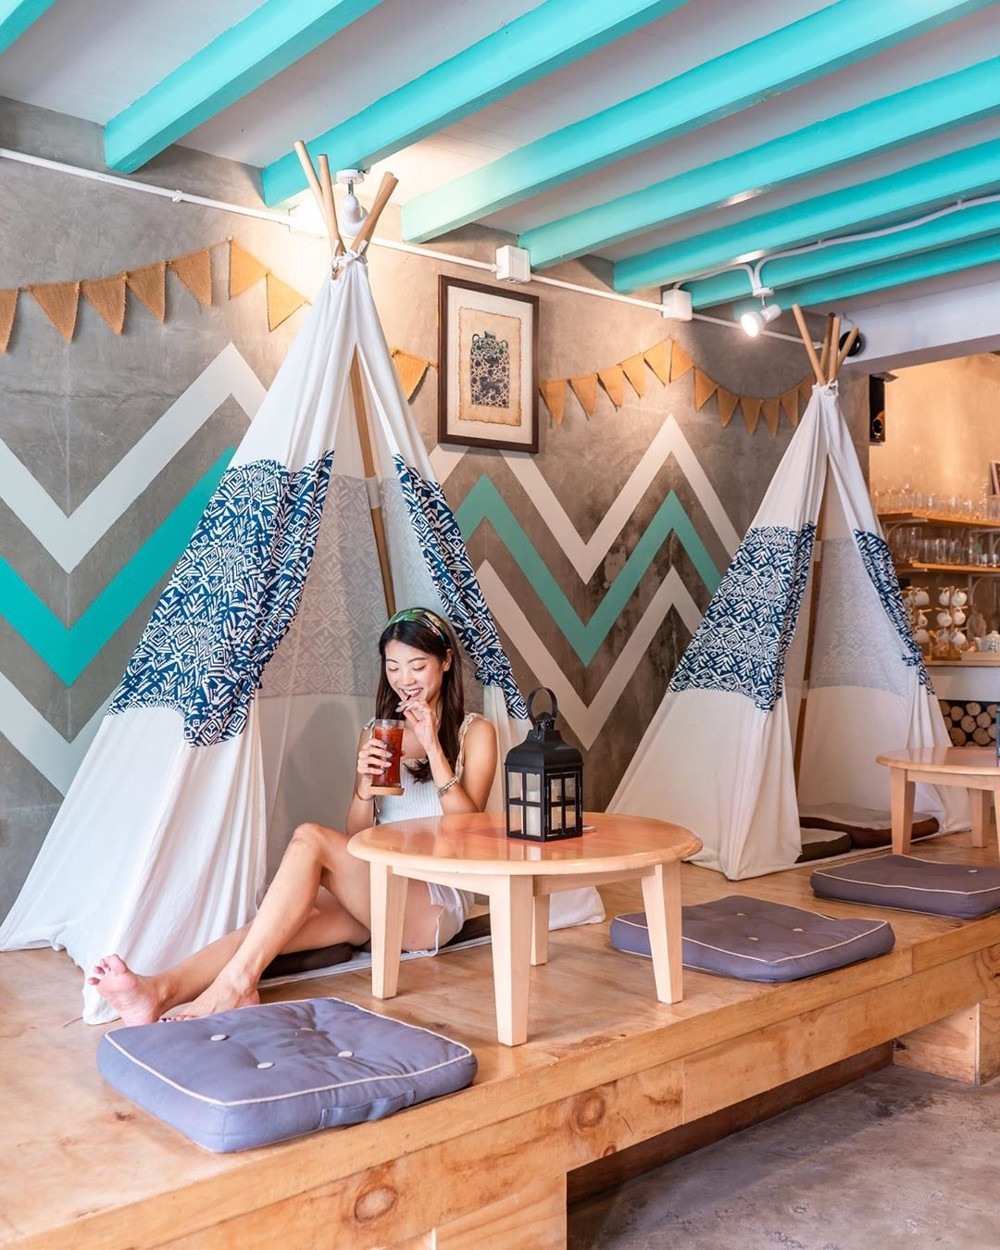 Phuket cafes - The Tent